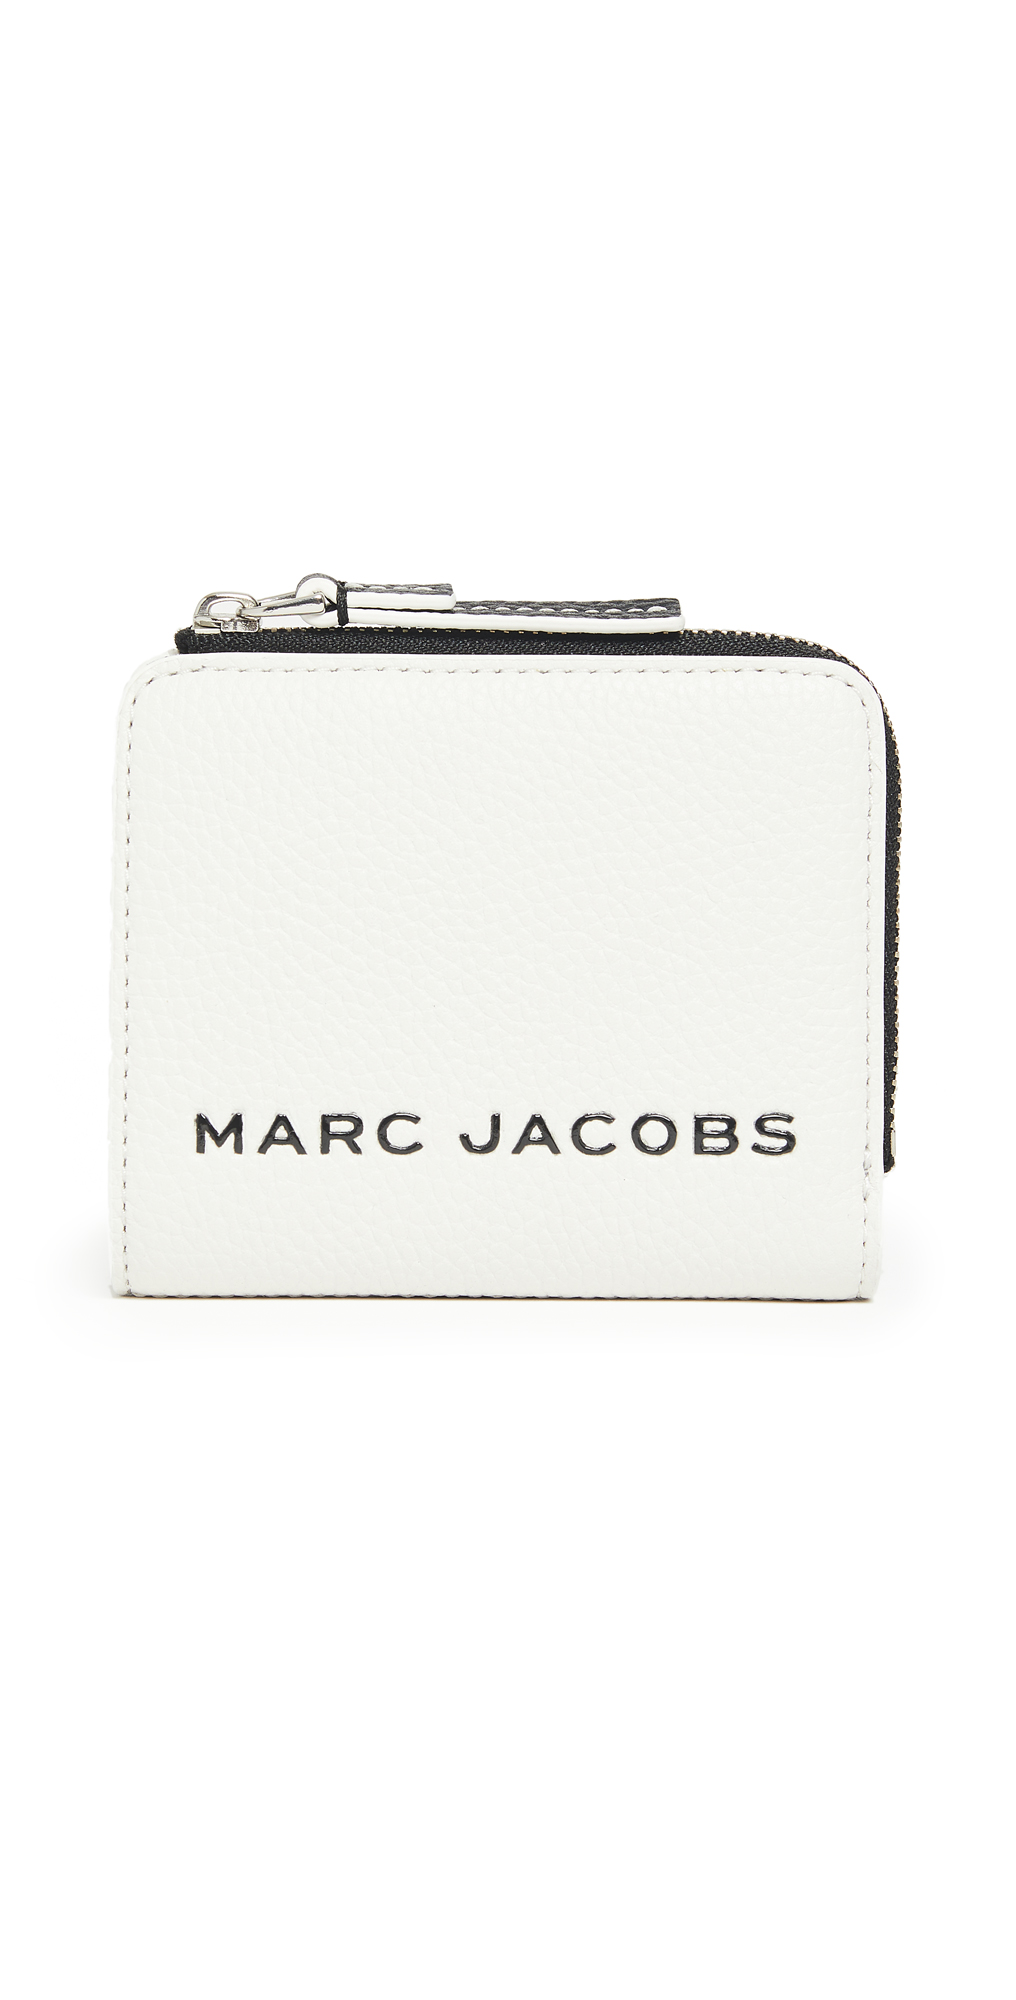 The Marc Jacobs Mini Compact Zip Wallet